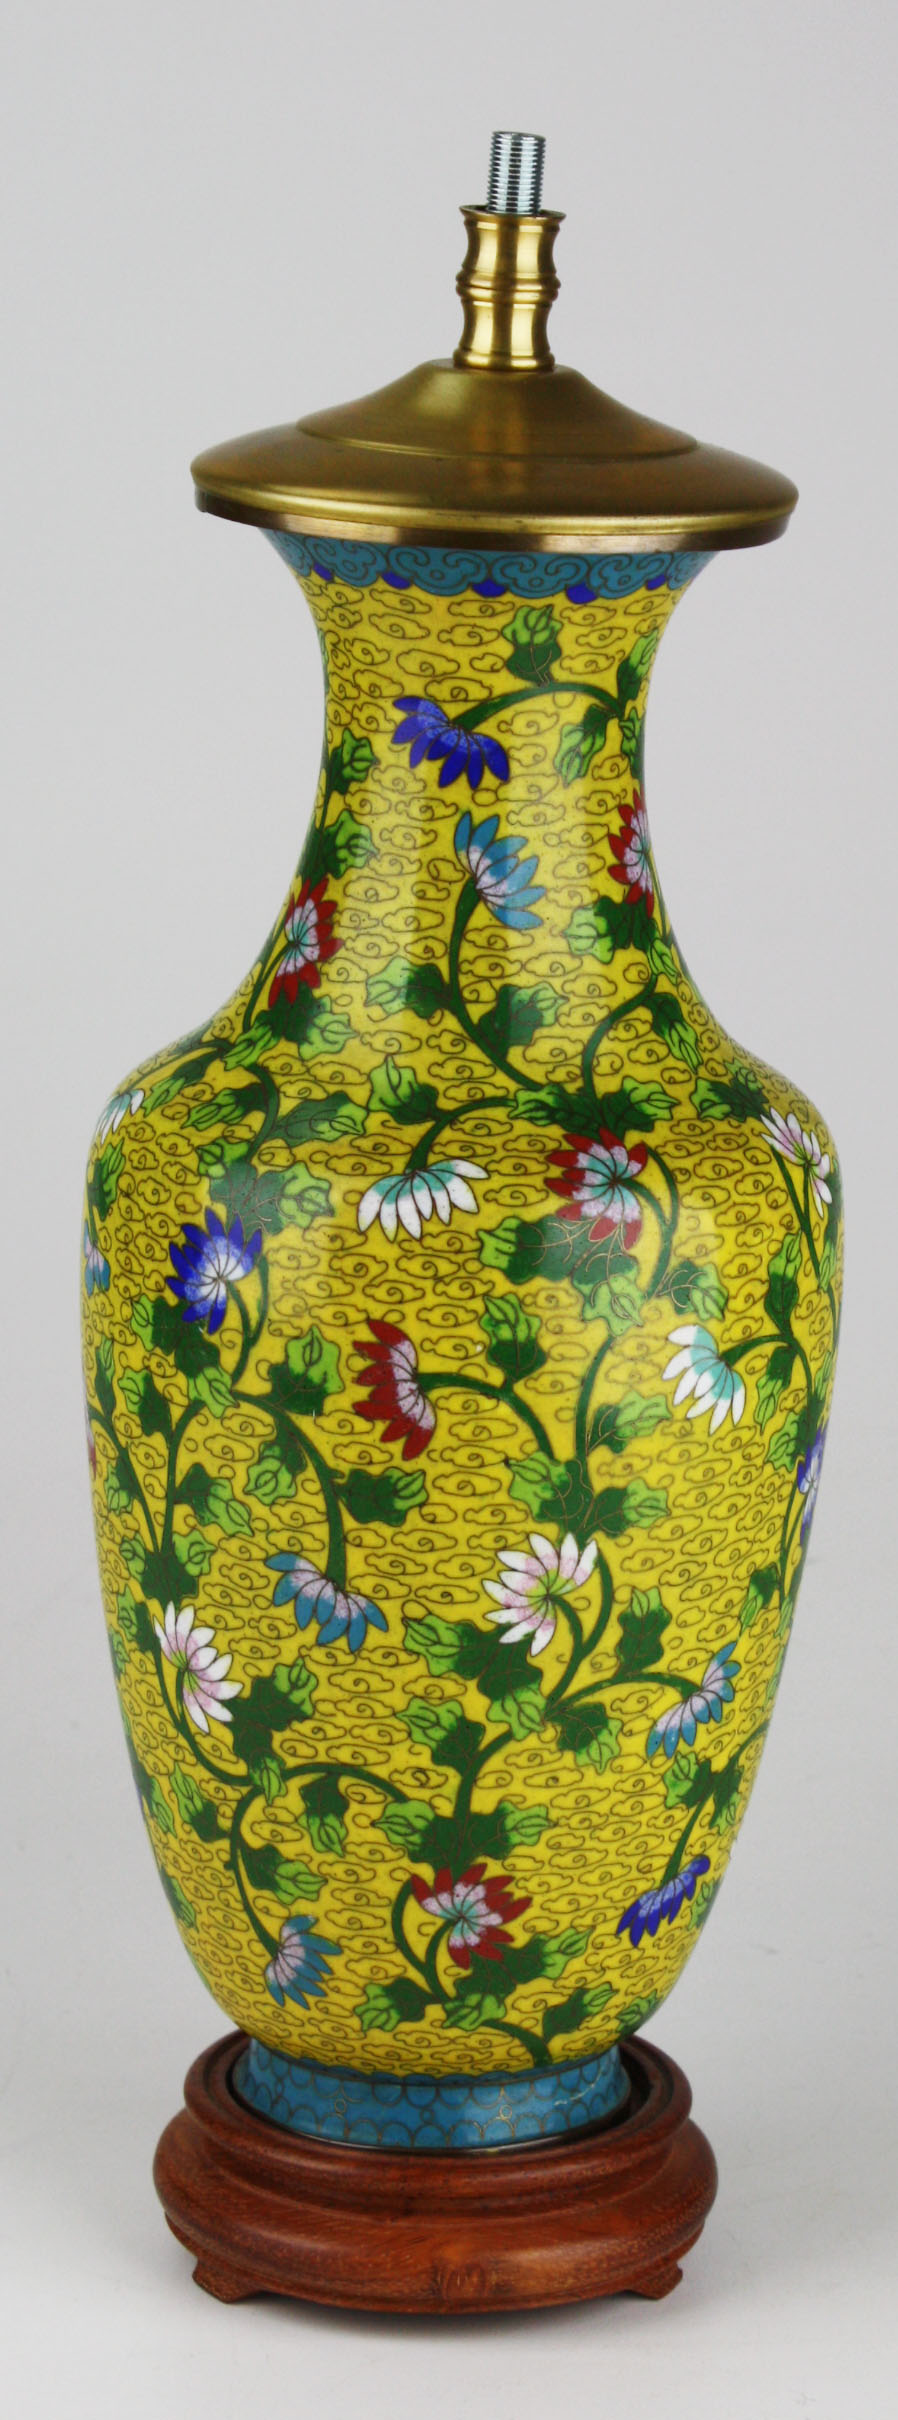 Awesome Chinese Cloisonne Lamp Base.JPG